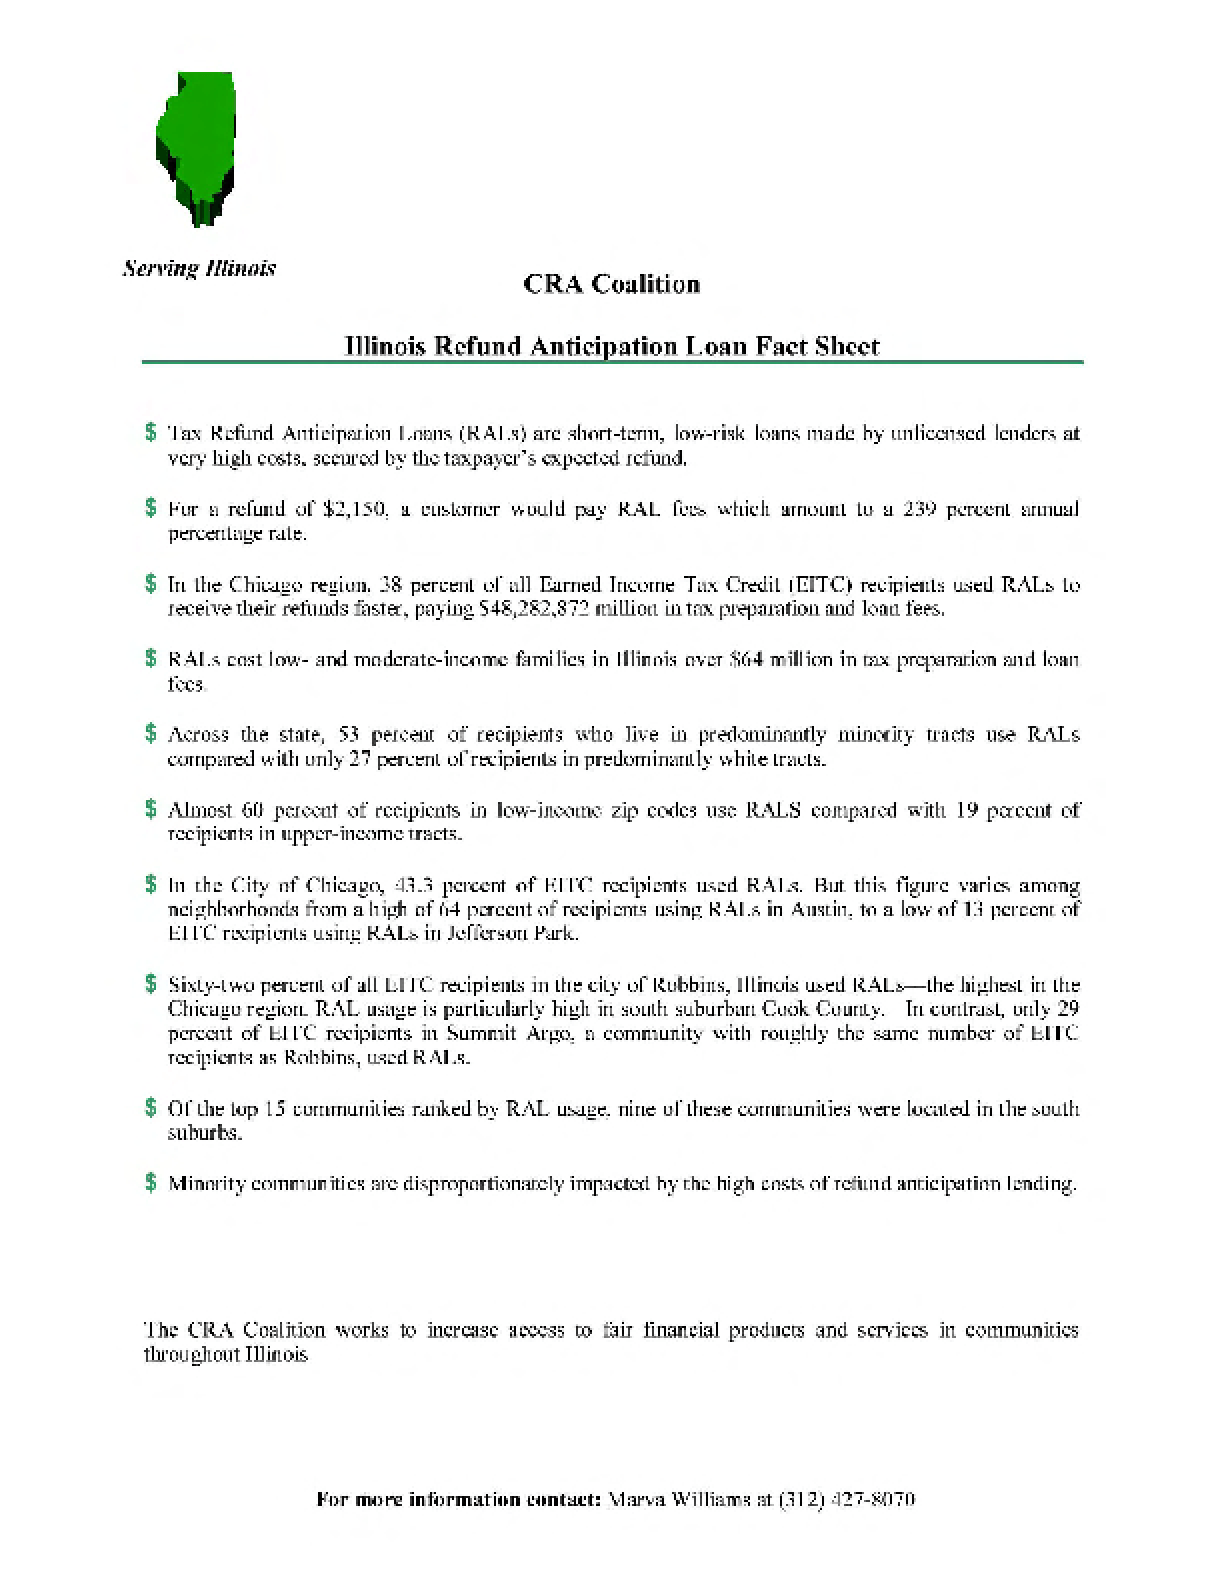 CRA Coalition Illinois Refund Anticipation Loan Fact Sheet